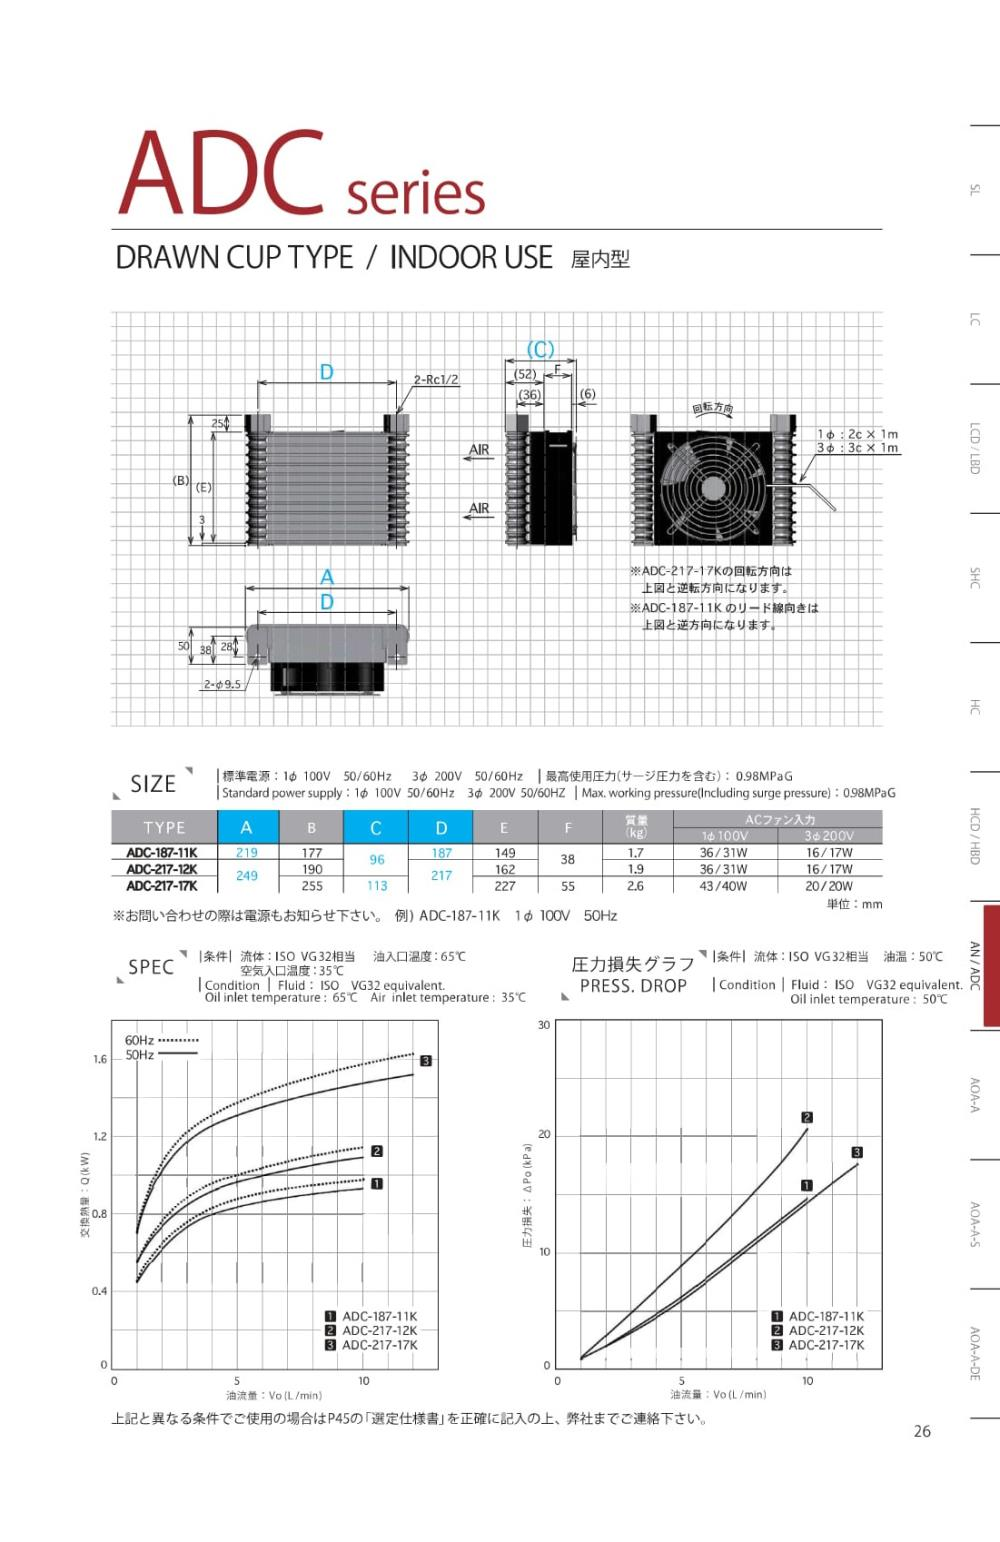 KAMUI Heat Exchanger ADC Series,ADC Series, ADC-187-11K, ADC-217-12K, ADC-217-17K, KAMUI, Heat Exchanger, Oil Cooler, KAMUI Heat Exchanger, KAMUI Oil Cooler,KAMUI,Machinery and Process Equipment/Heat Exchangers